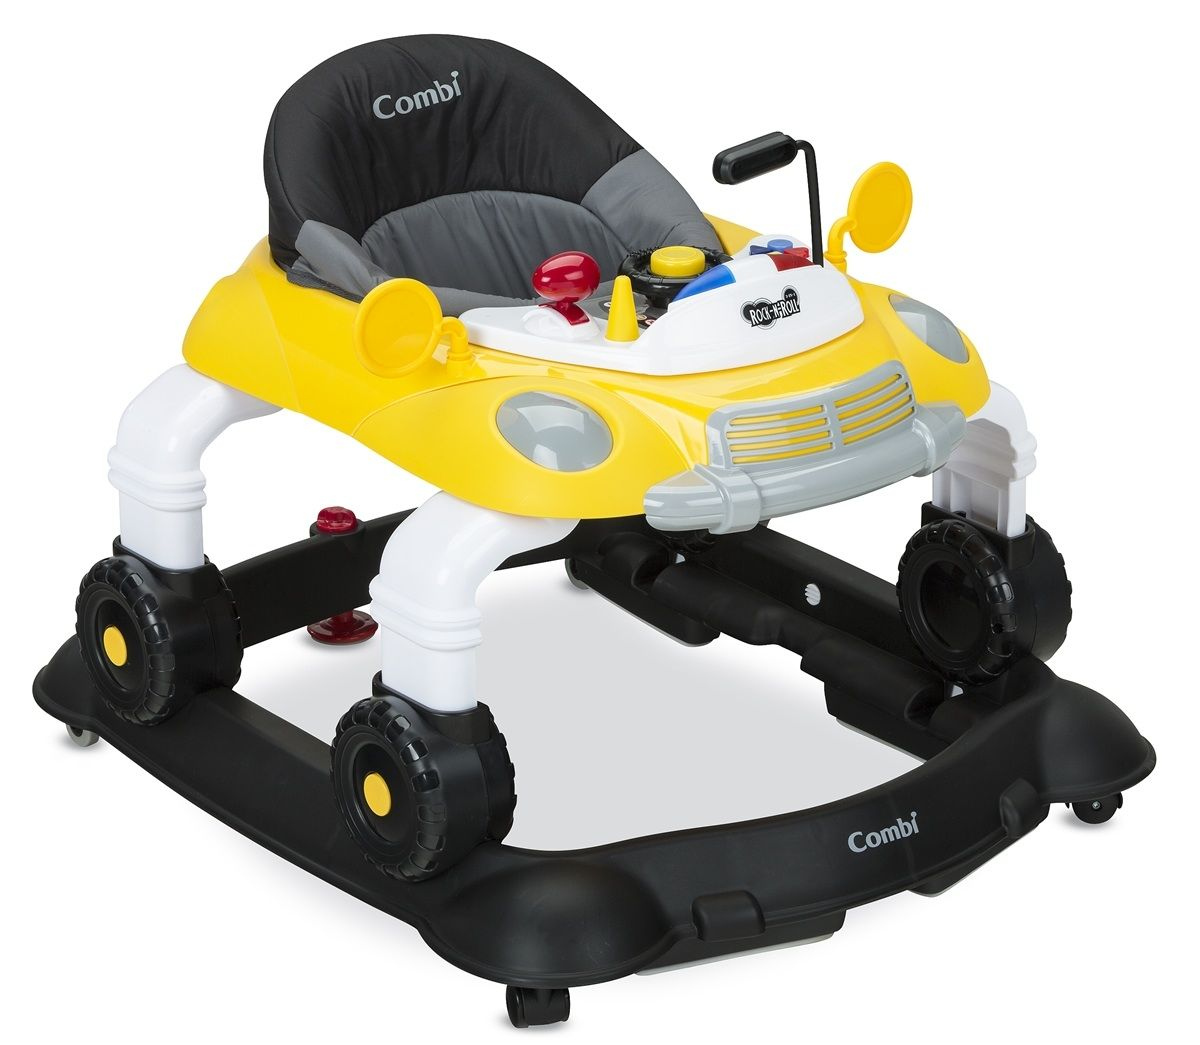 Child toys car  The Rock N Roll provides a customized experience with three height